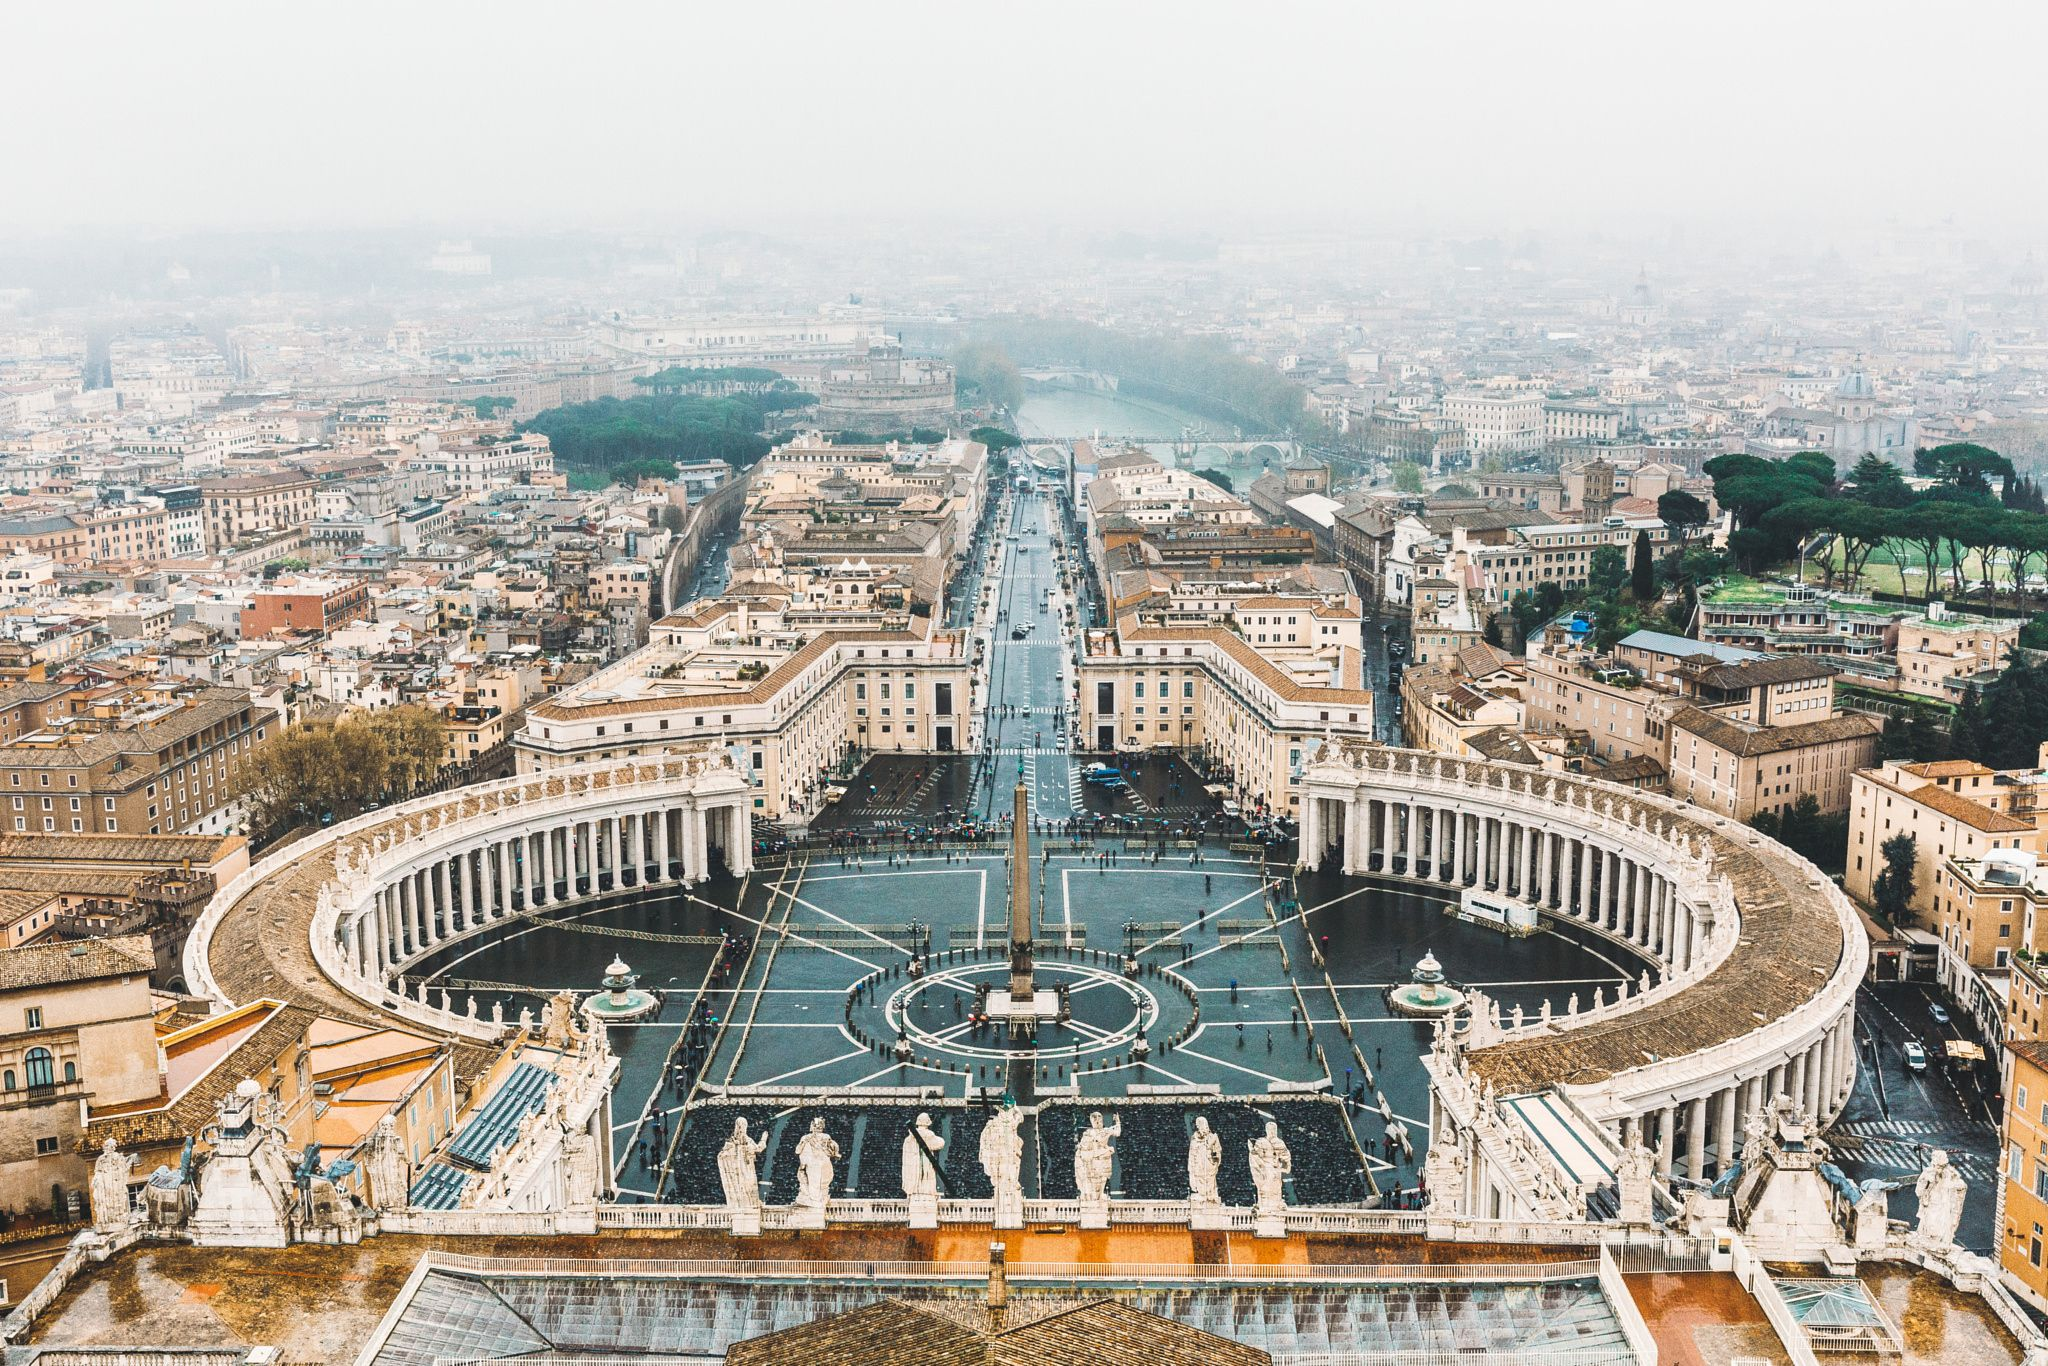 Top of the Vatican.. Looking down on Rome - Photo ...